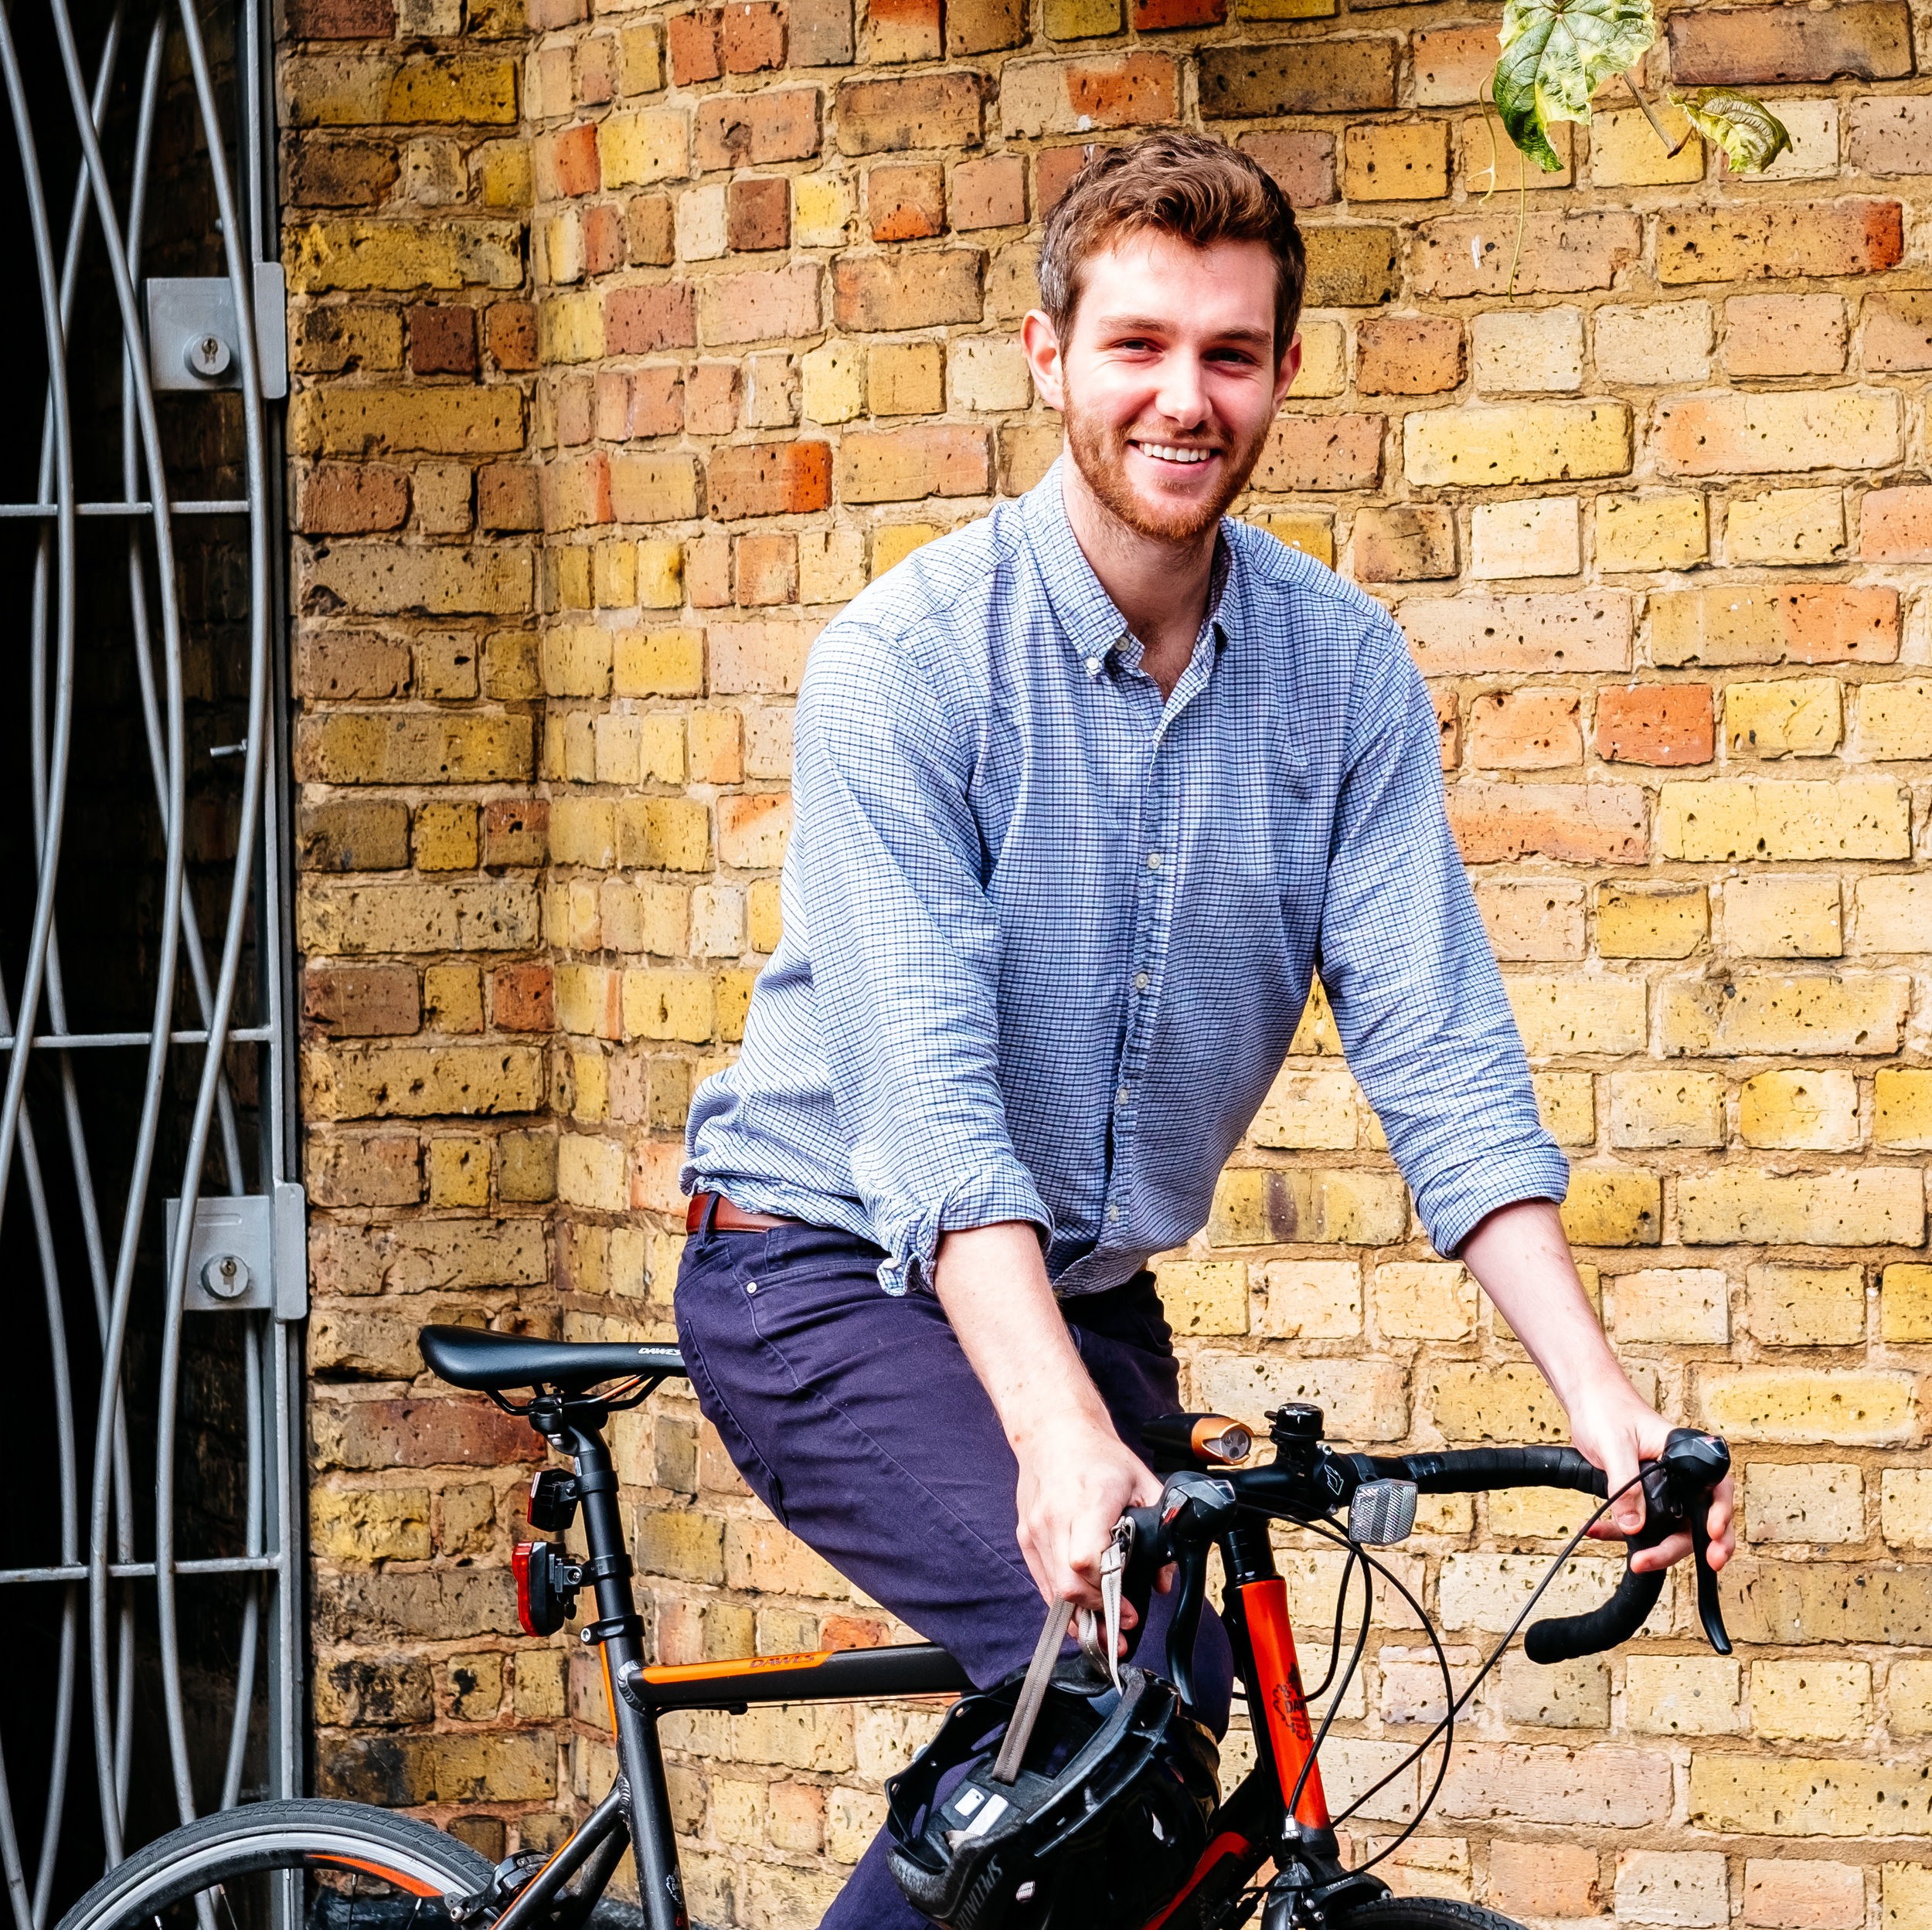 Cycle Forum - To deliver more schemes, we engage with our business and residential communities to find out how we can best champion cycling in London Bridge.Sign up for updates+